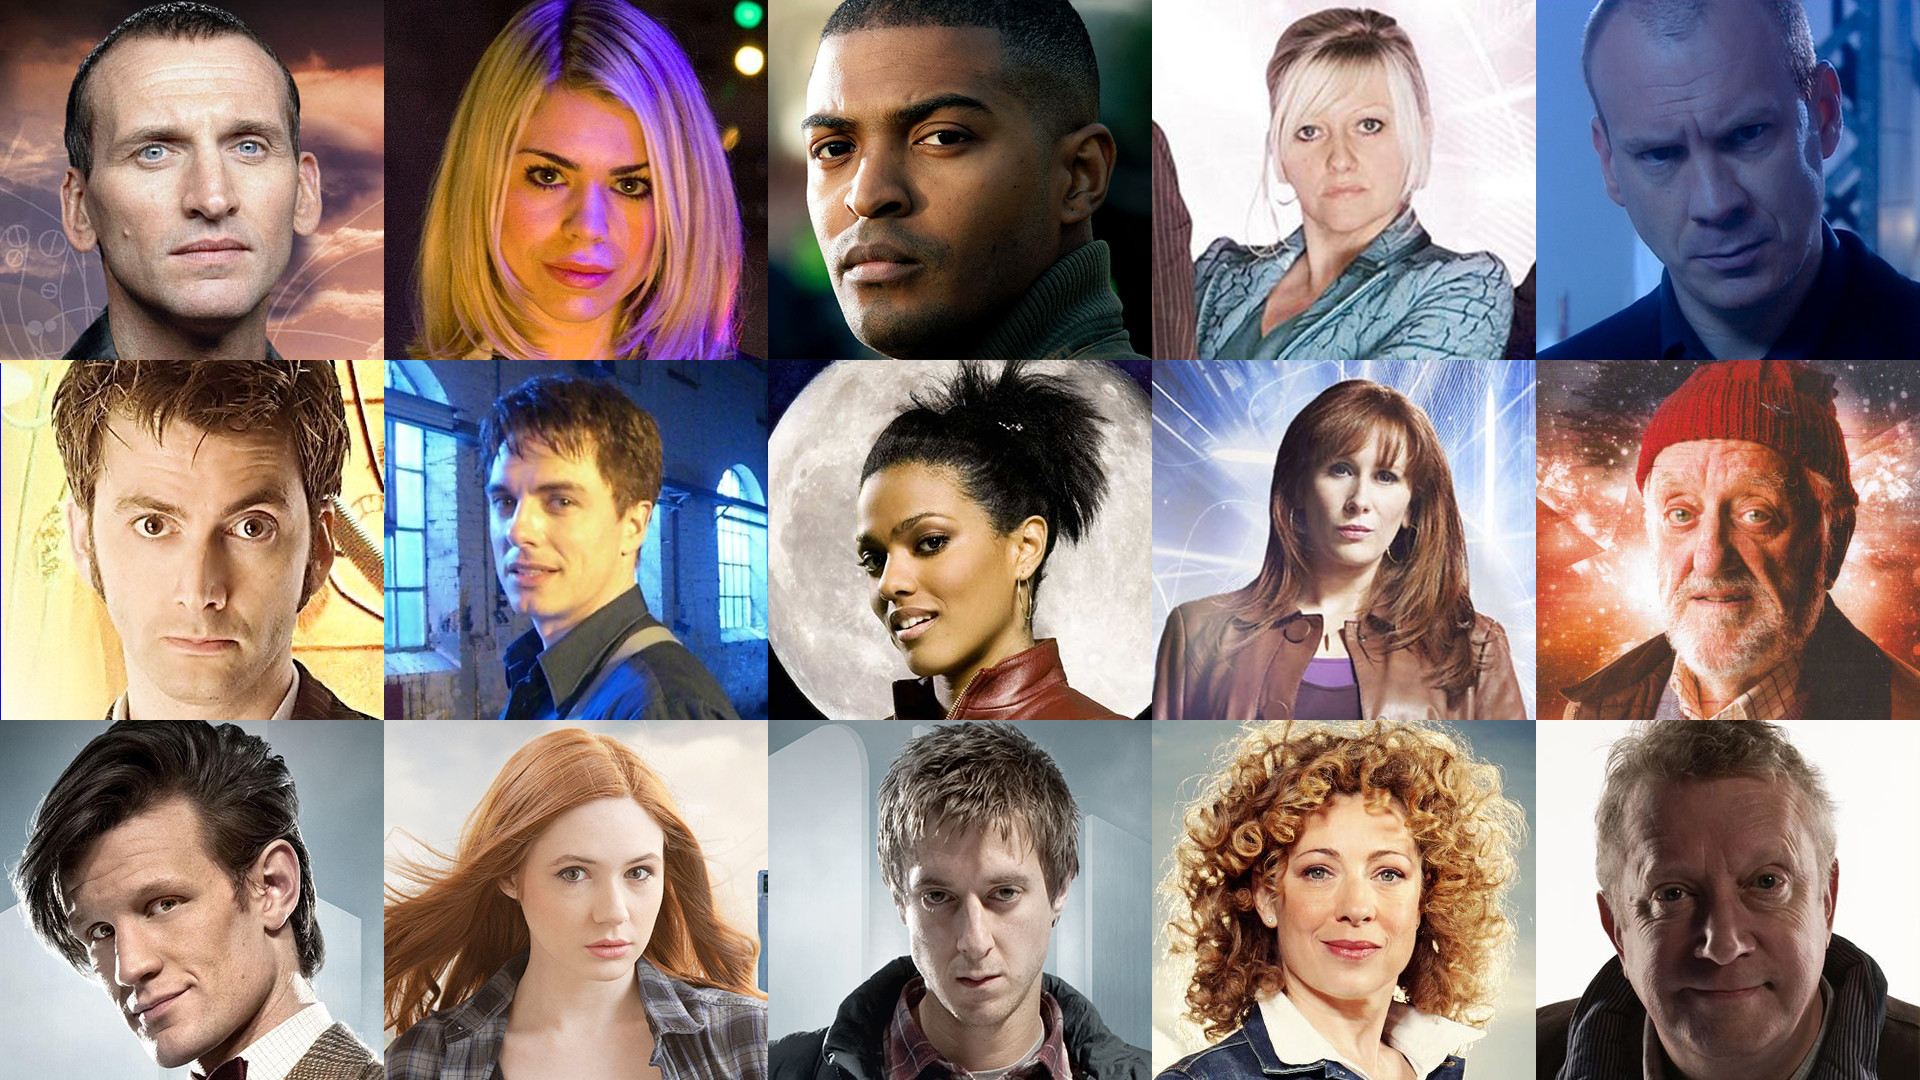 doctor_who__companions__friends_by_rrpjdisc-d5gehz1.jpg (1920×1080) | Doctor  WHO | Pinterest | Eleventh doctor, Bad wolf and Superwholock